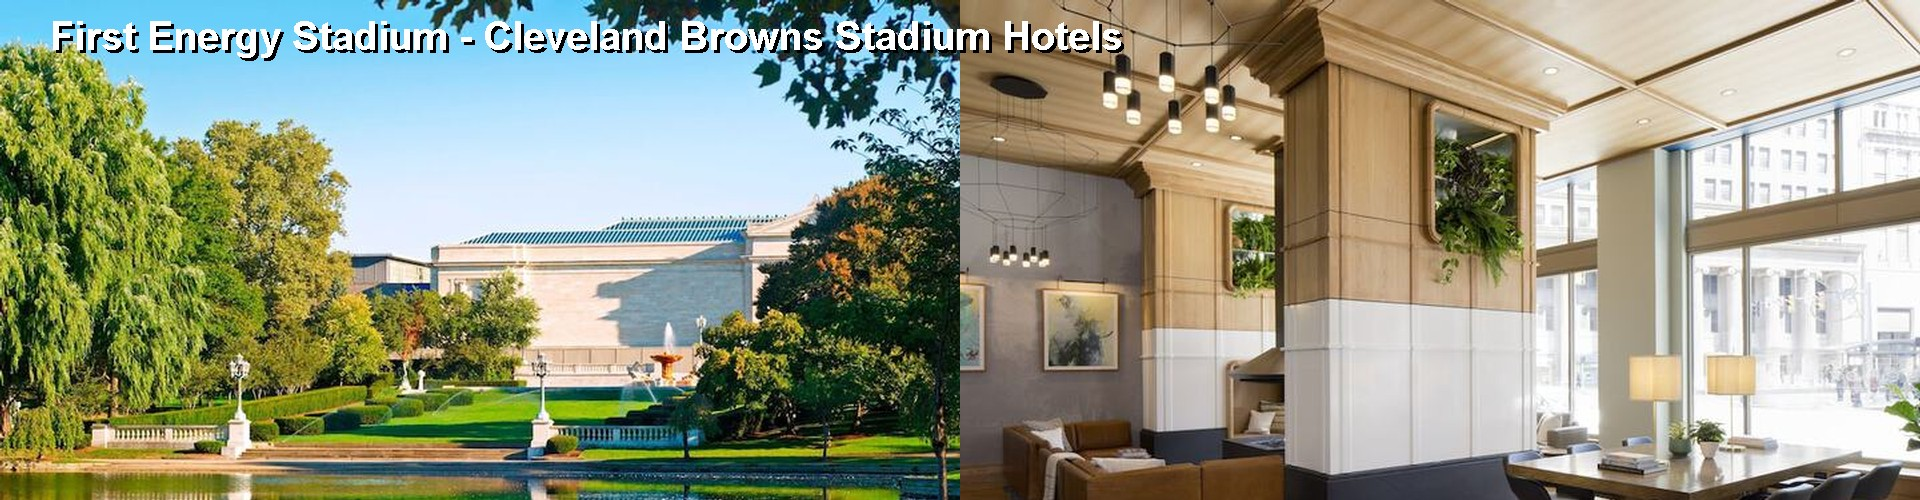 5 Best Hotels near First Energy Stadium - Cleveland Browns Stadium